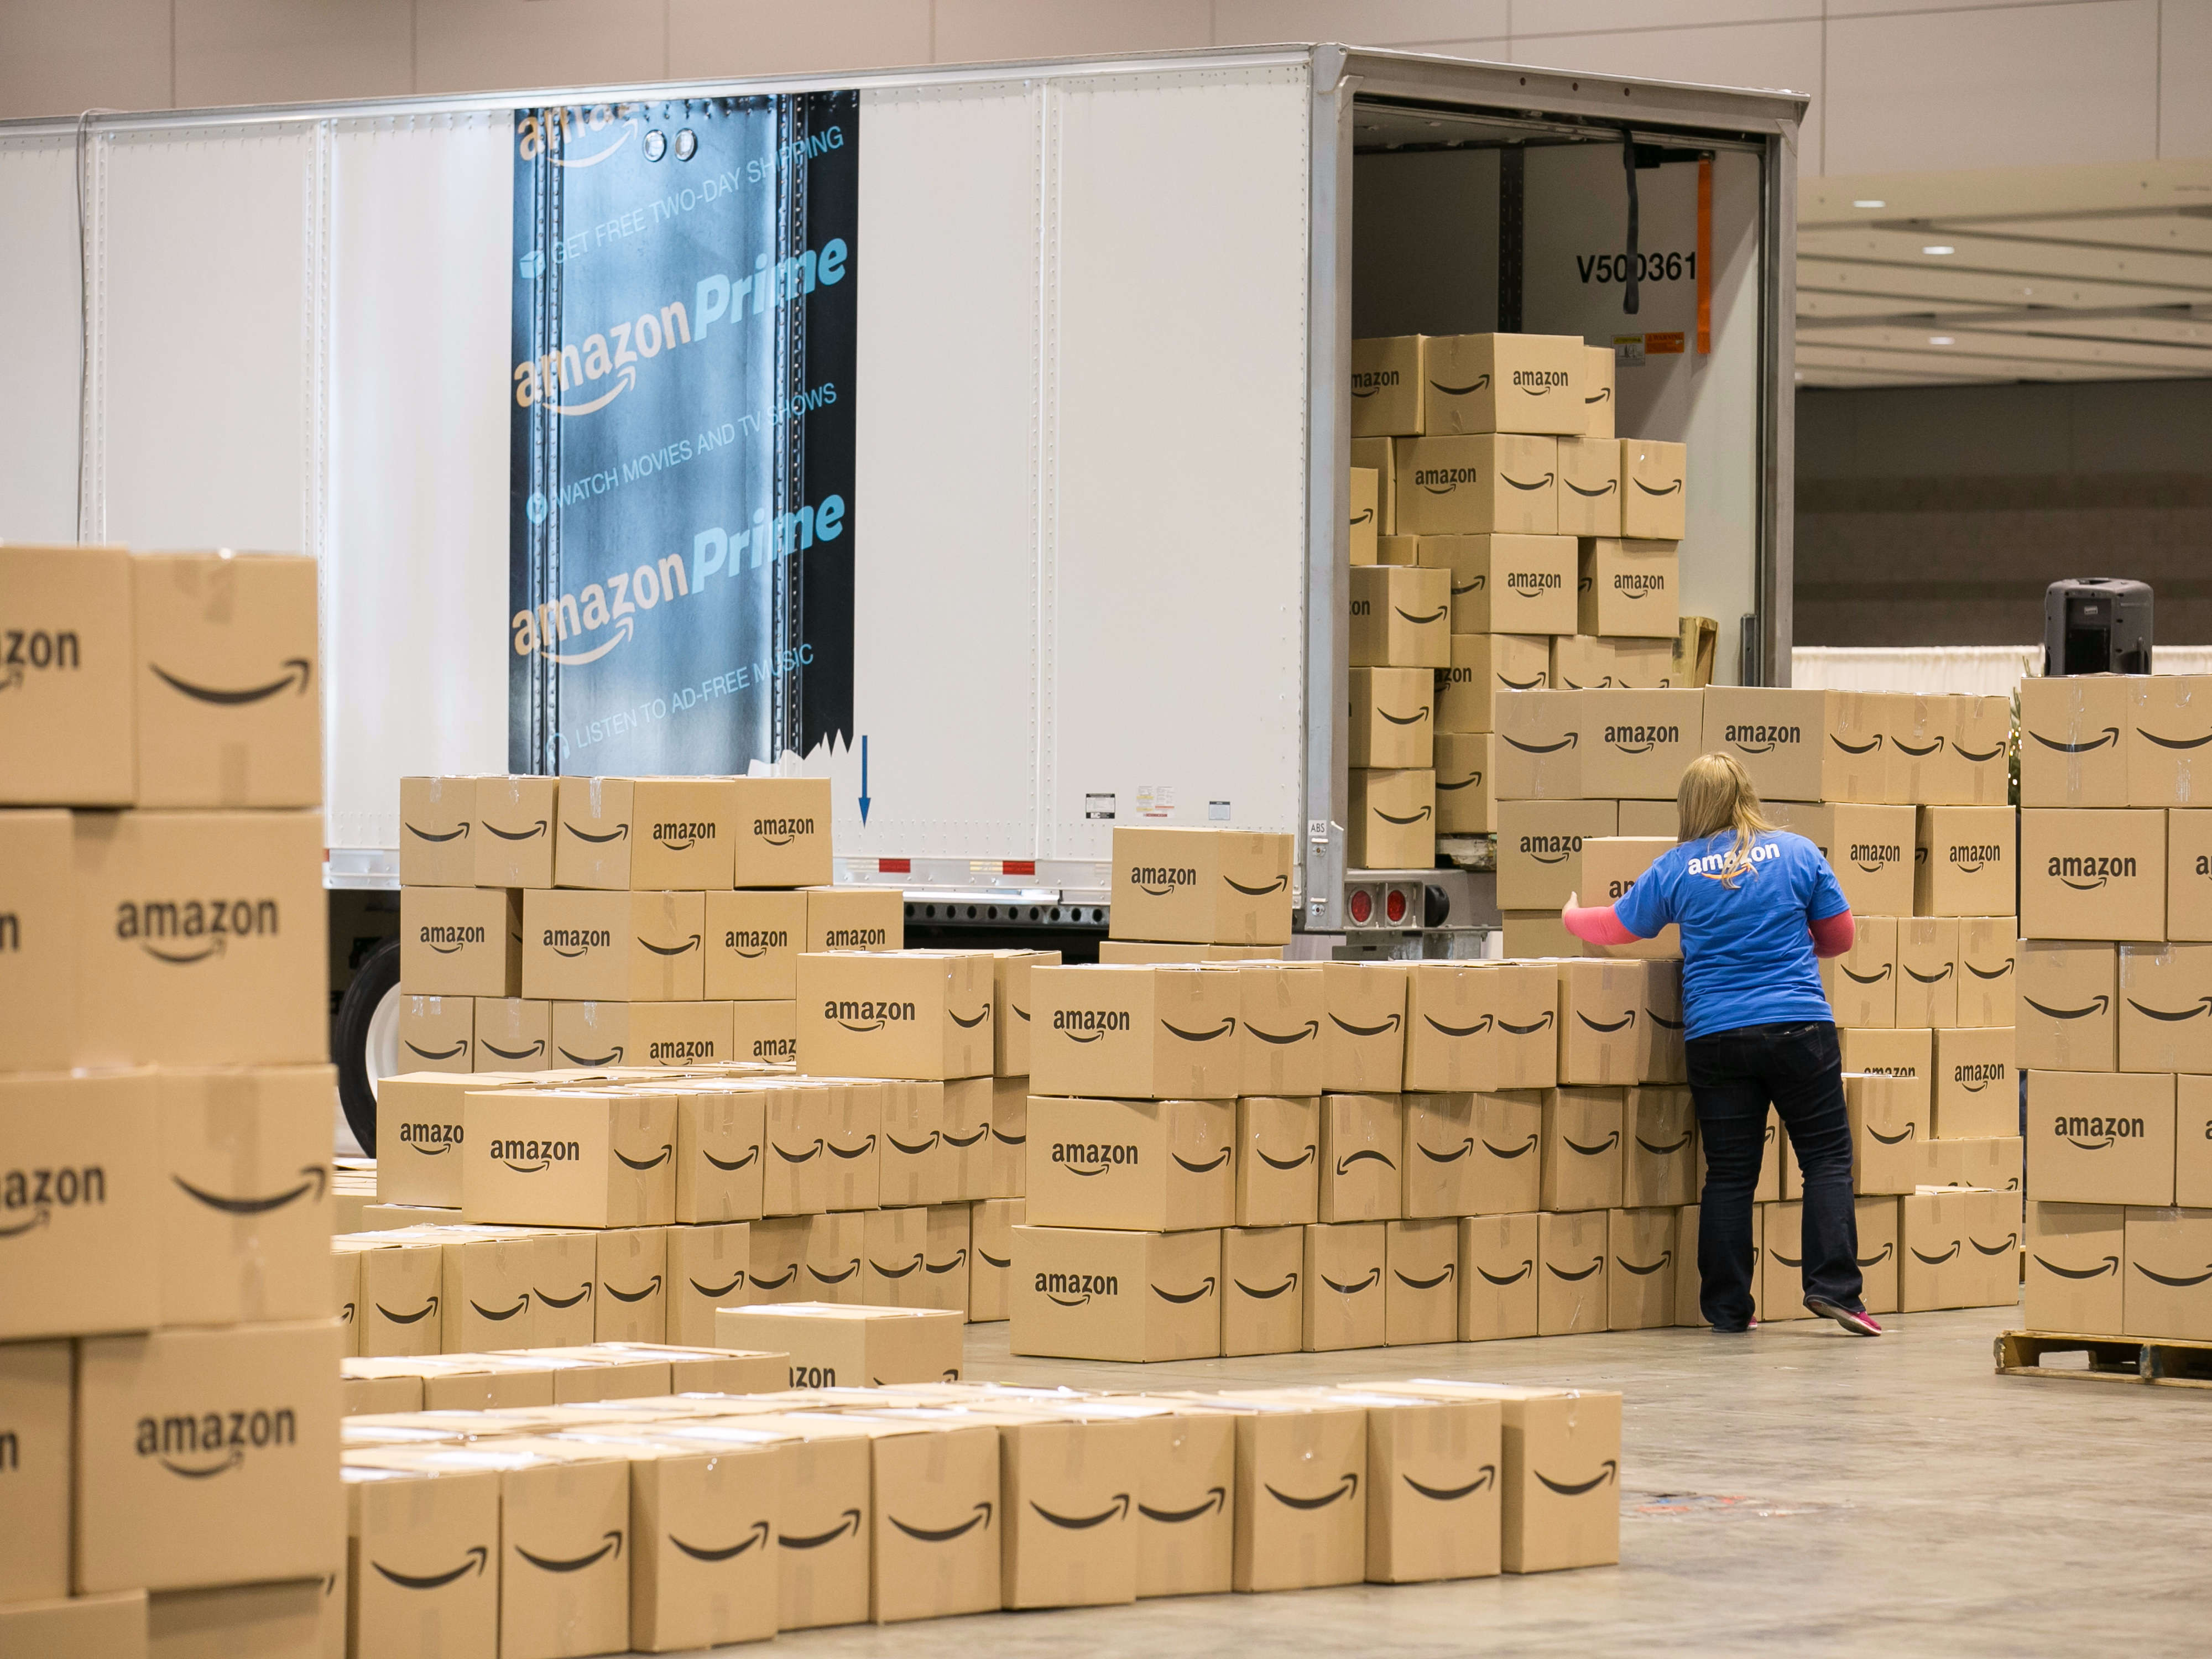 Amazon has a secret weapon that is crushing the competition (AMZN)